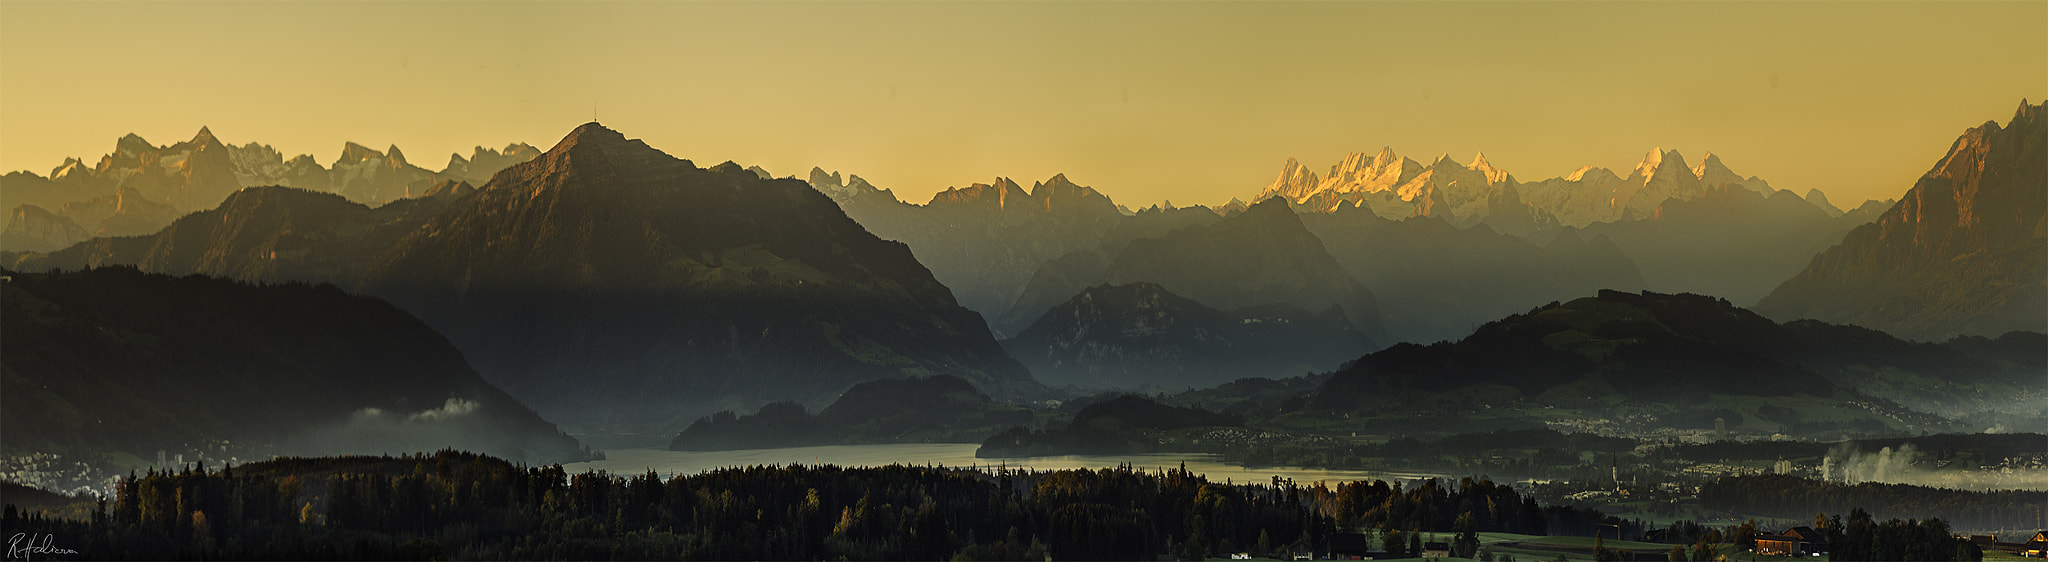 Photograph Good morning switzerland by Robin Halioua on 500px